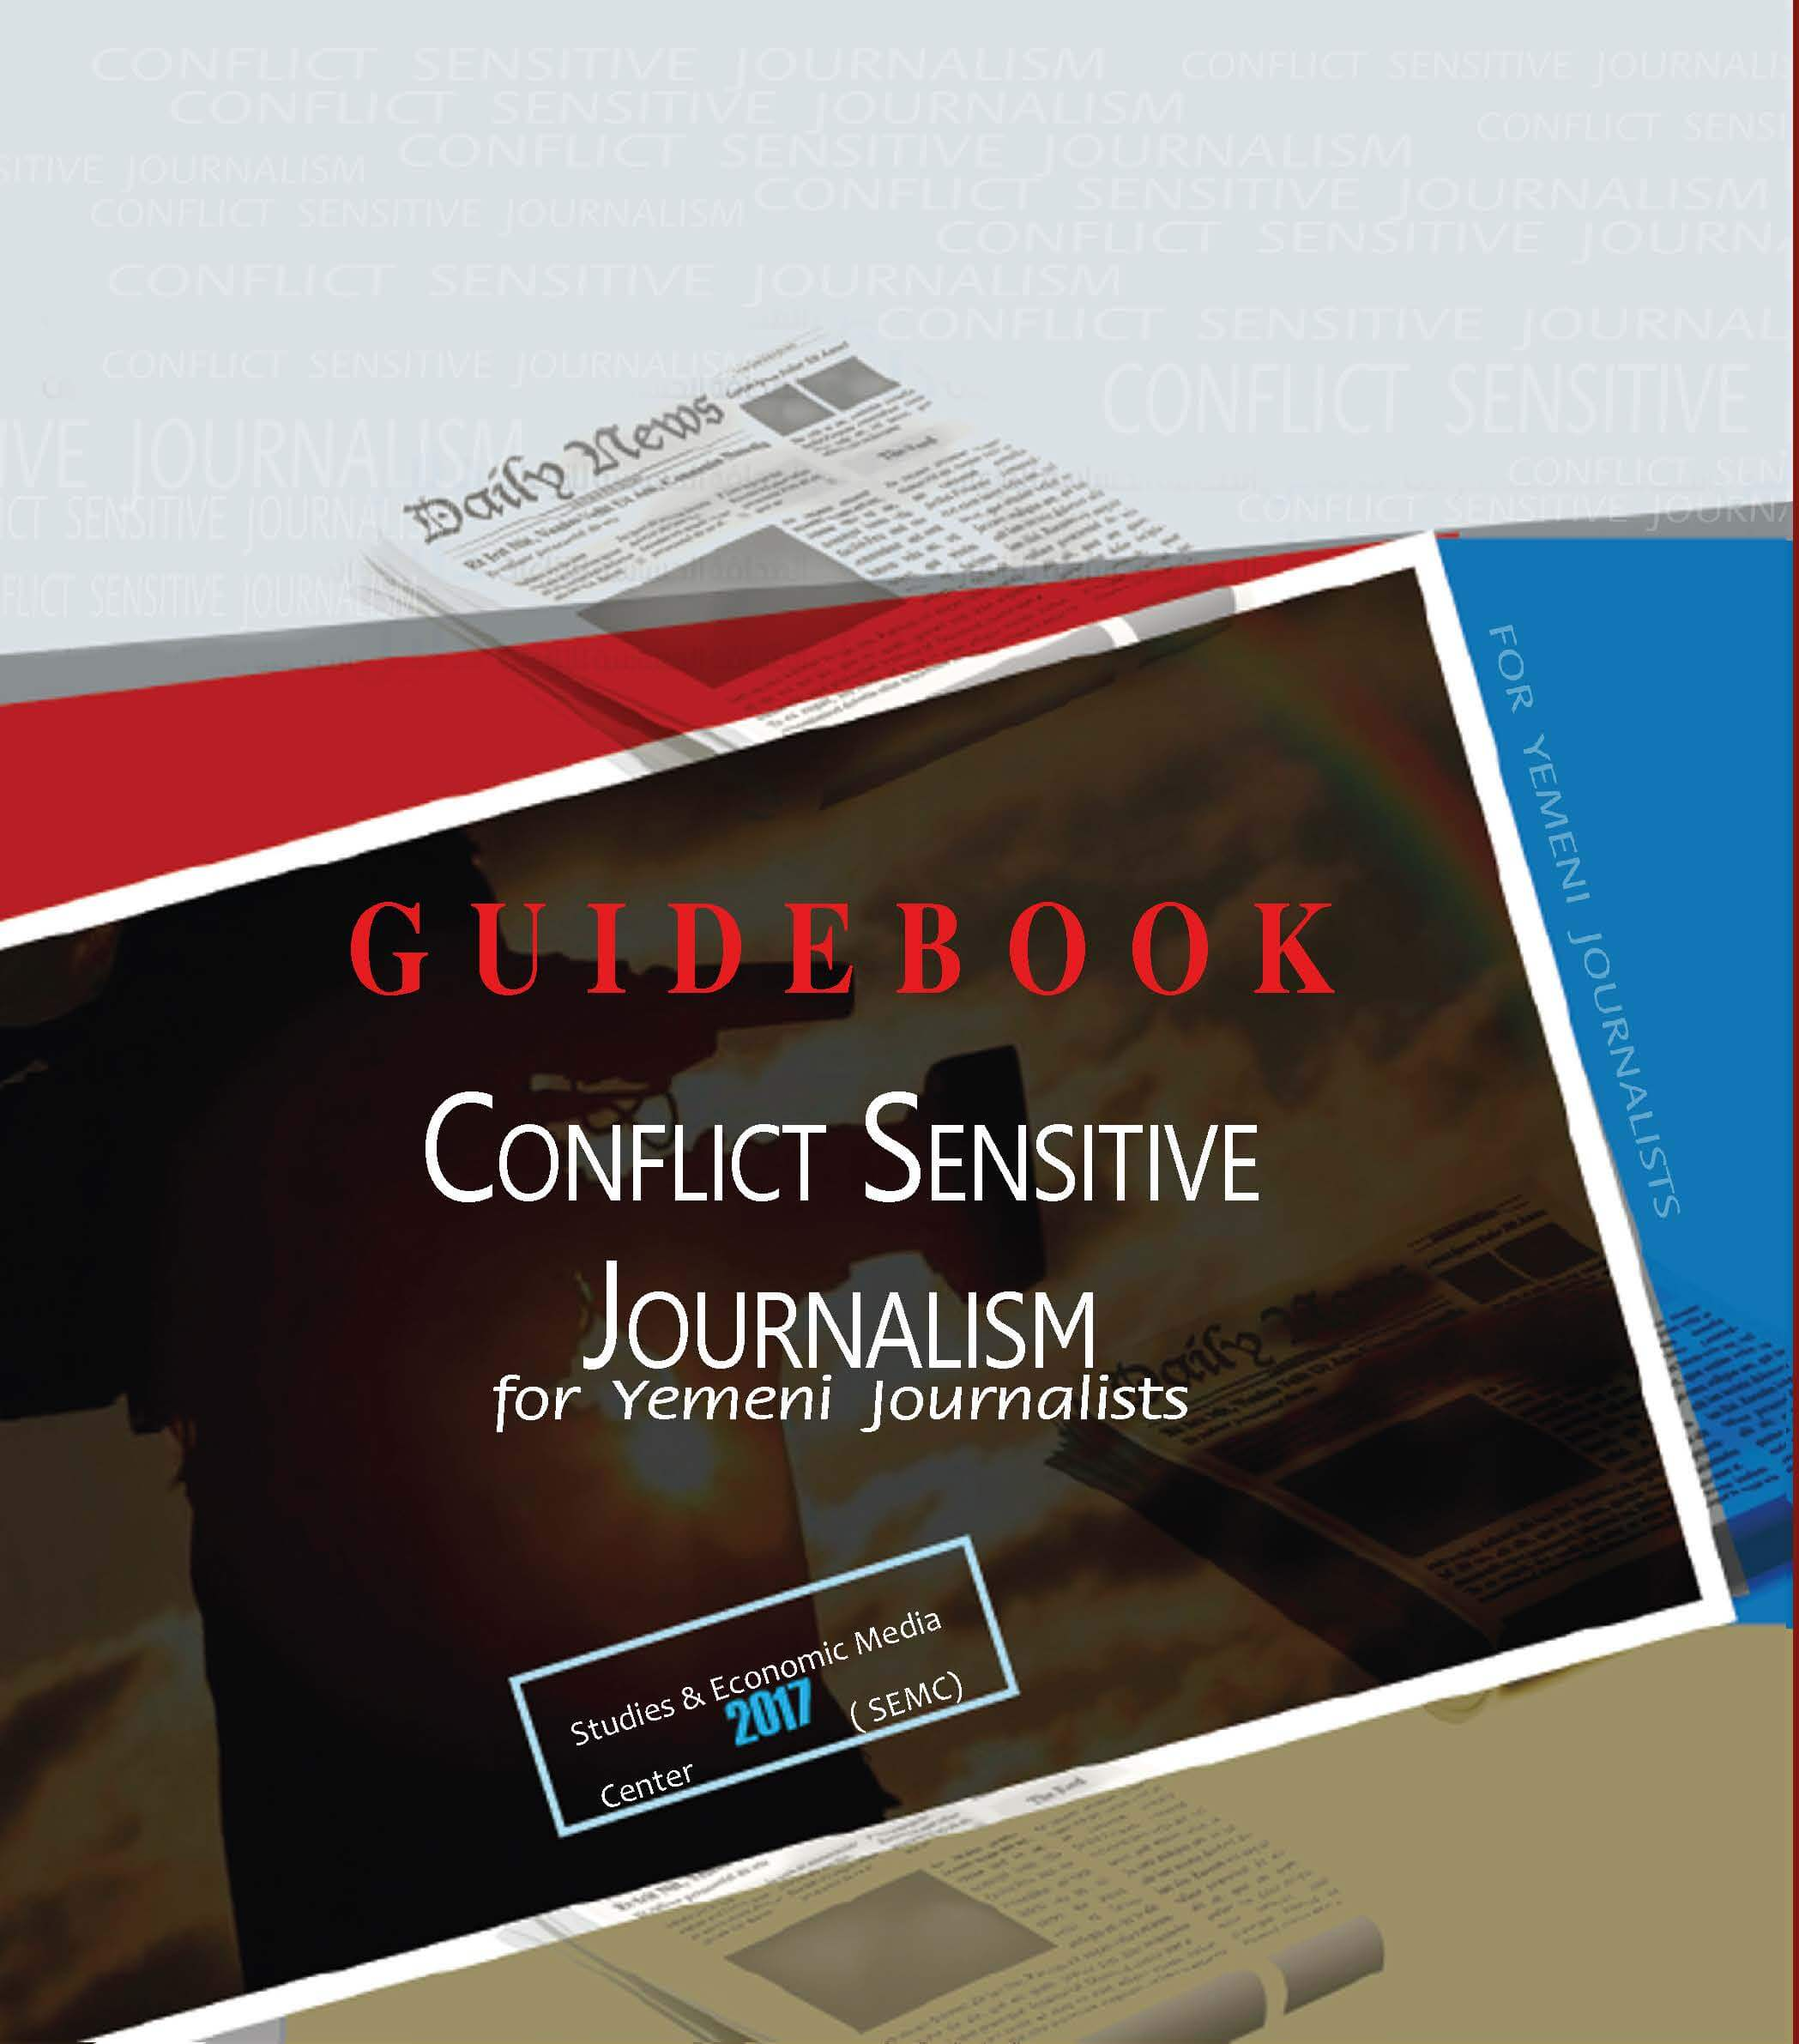 Yemen: Conflict sensitive journalism guide